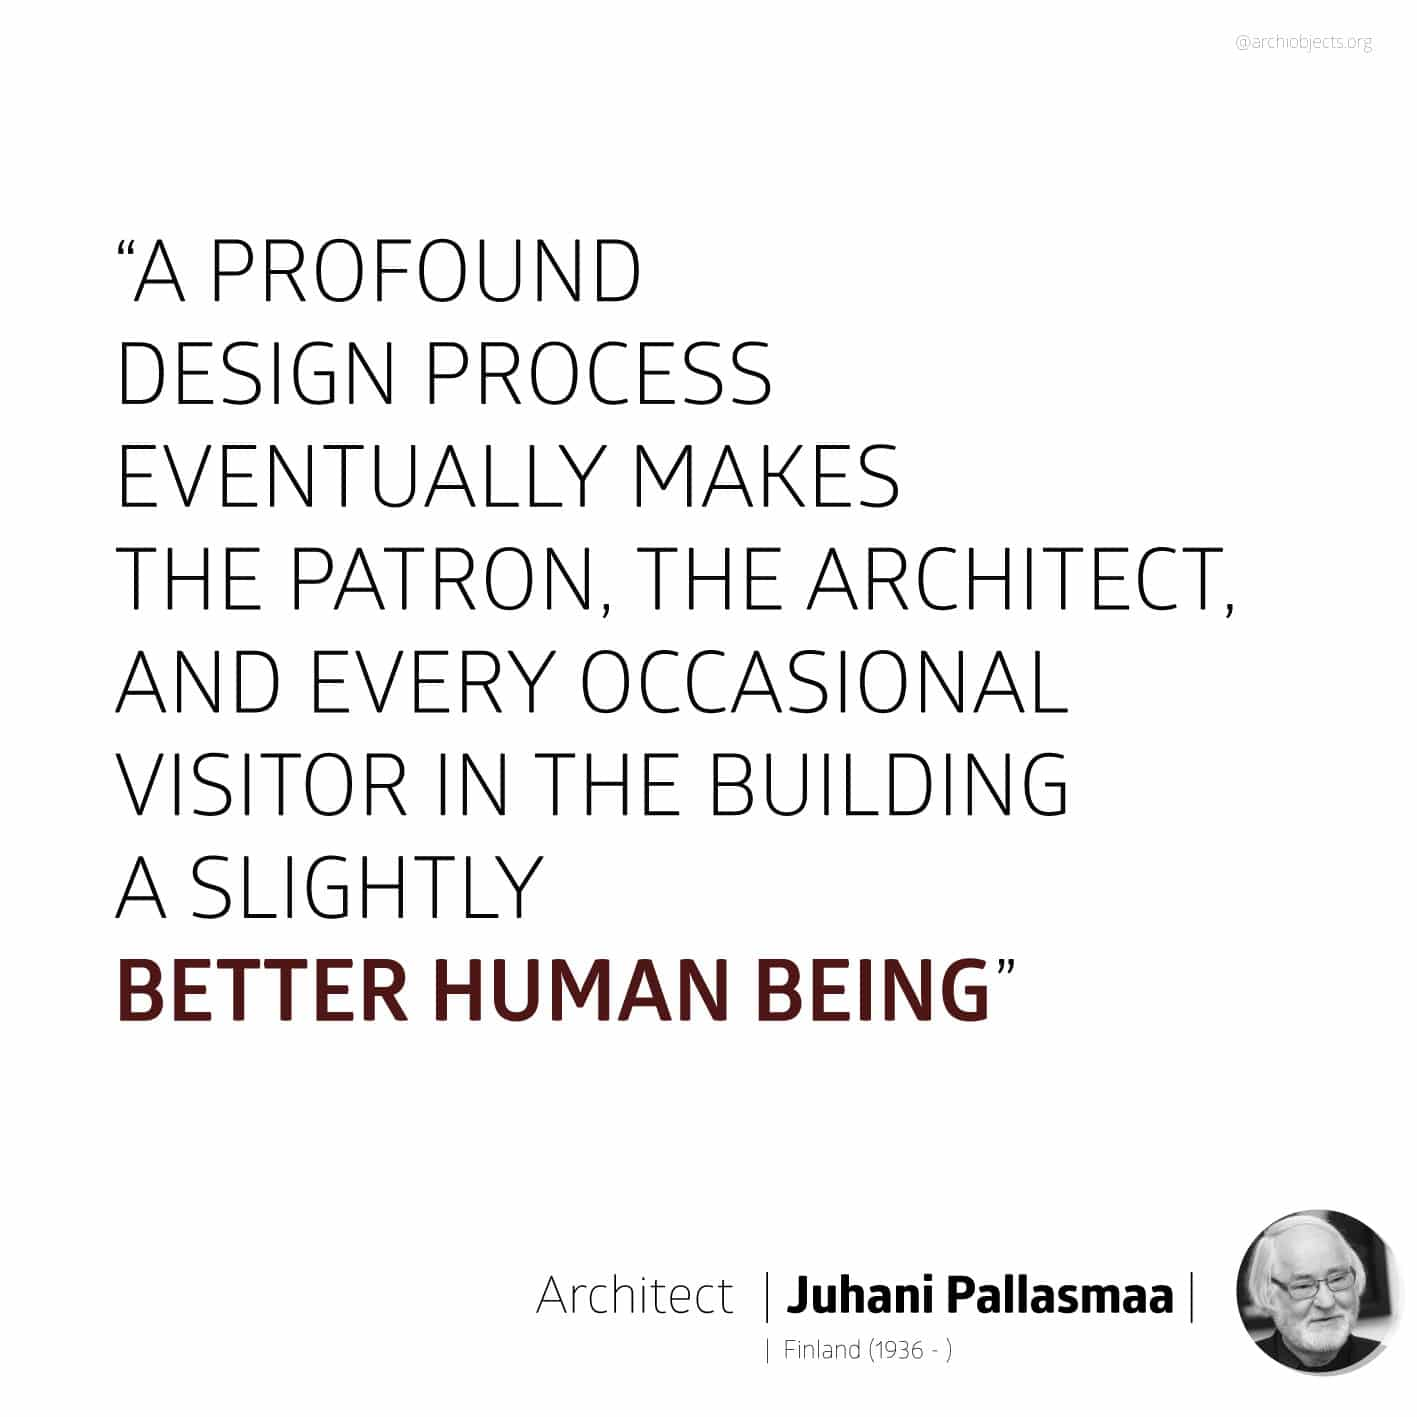 pallasmaa quote